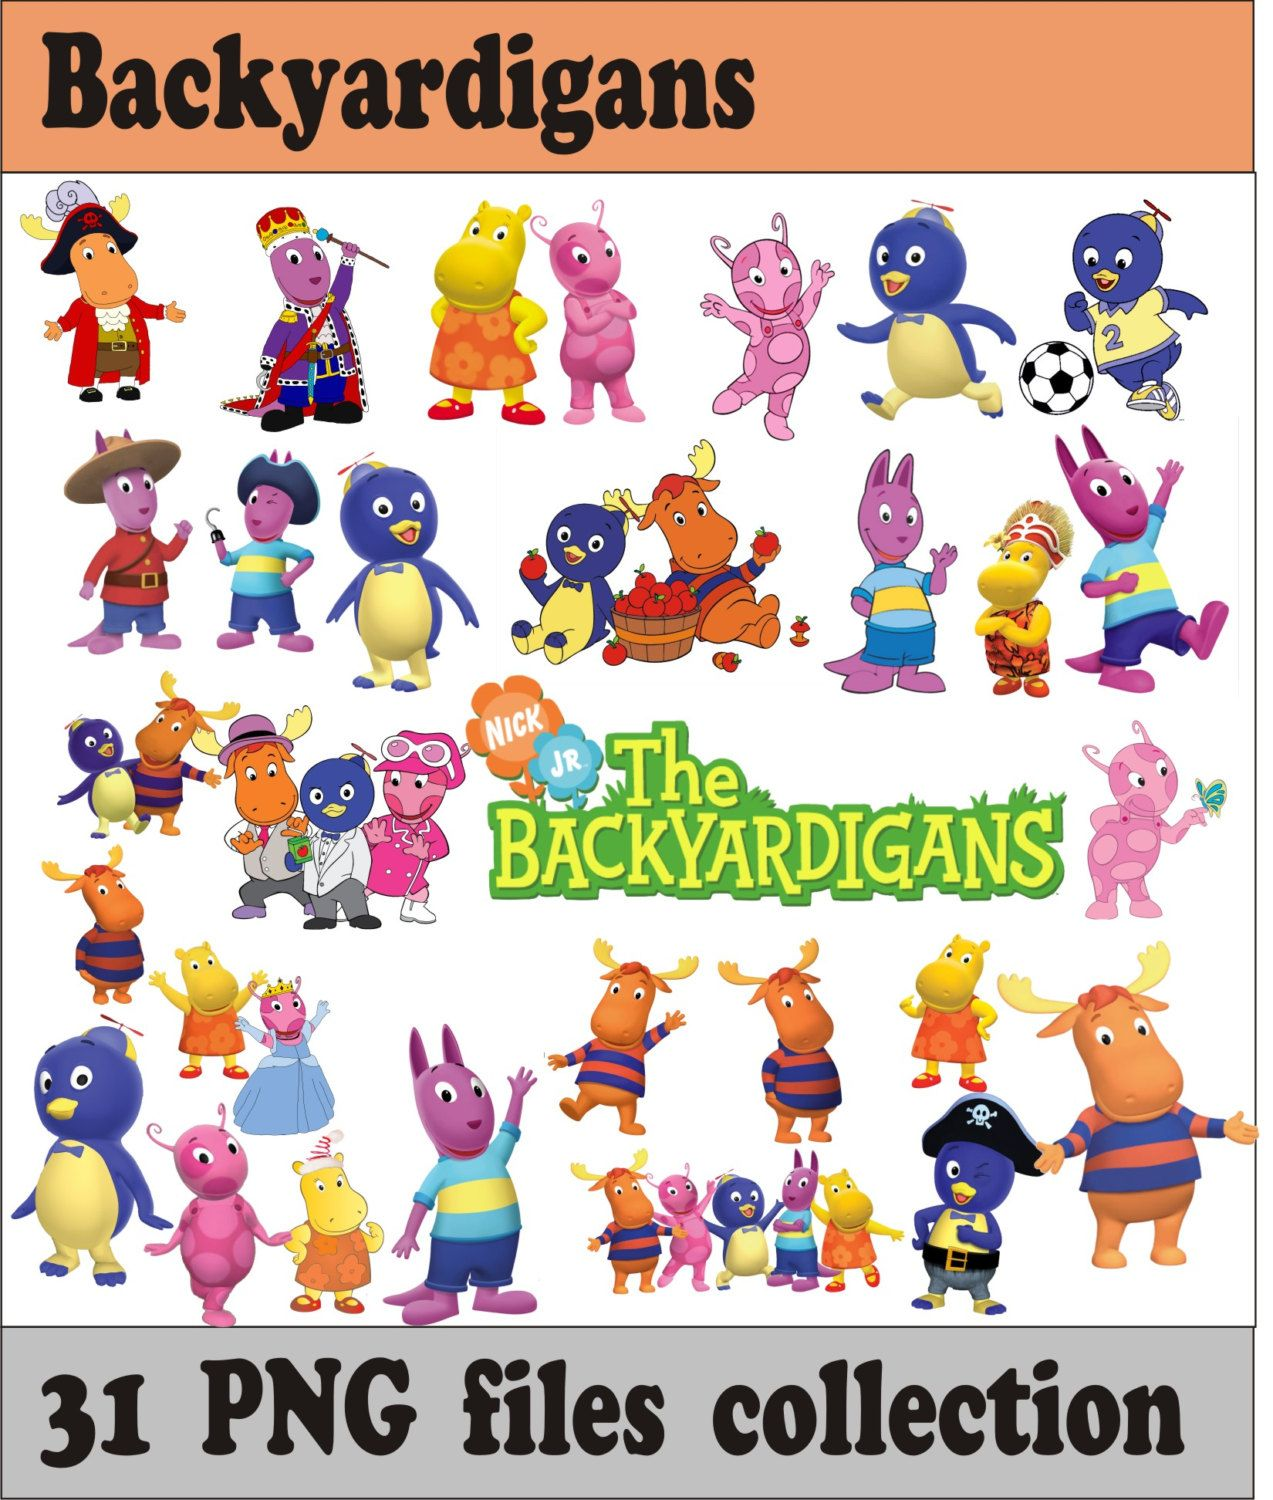 Decoration clipart party item. Backyardigans collection png vector